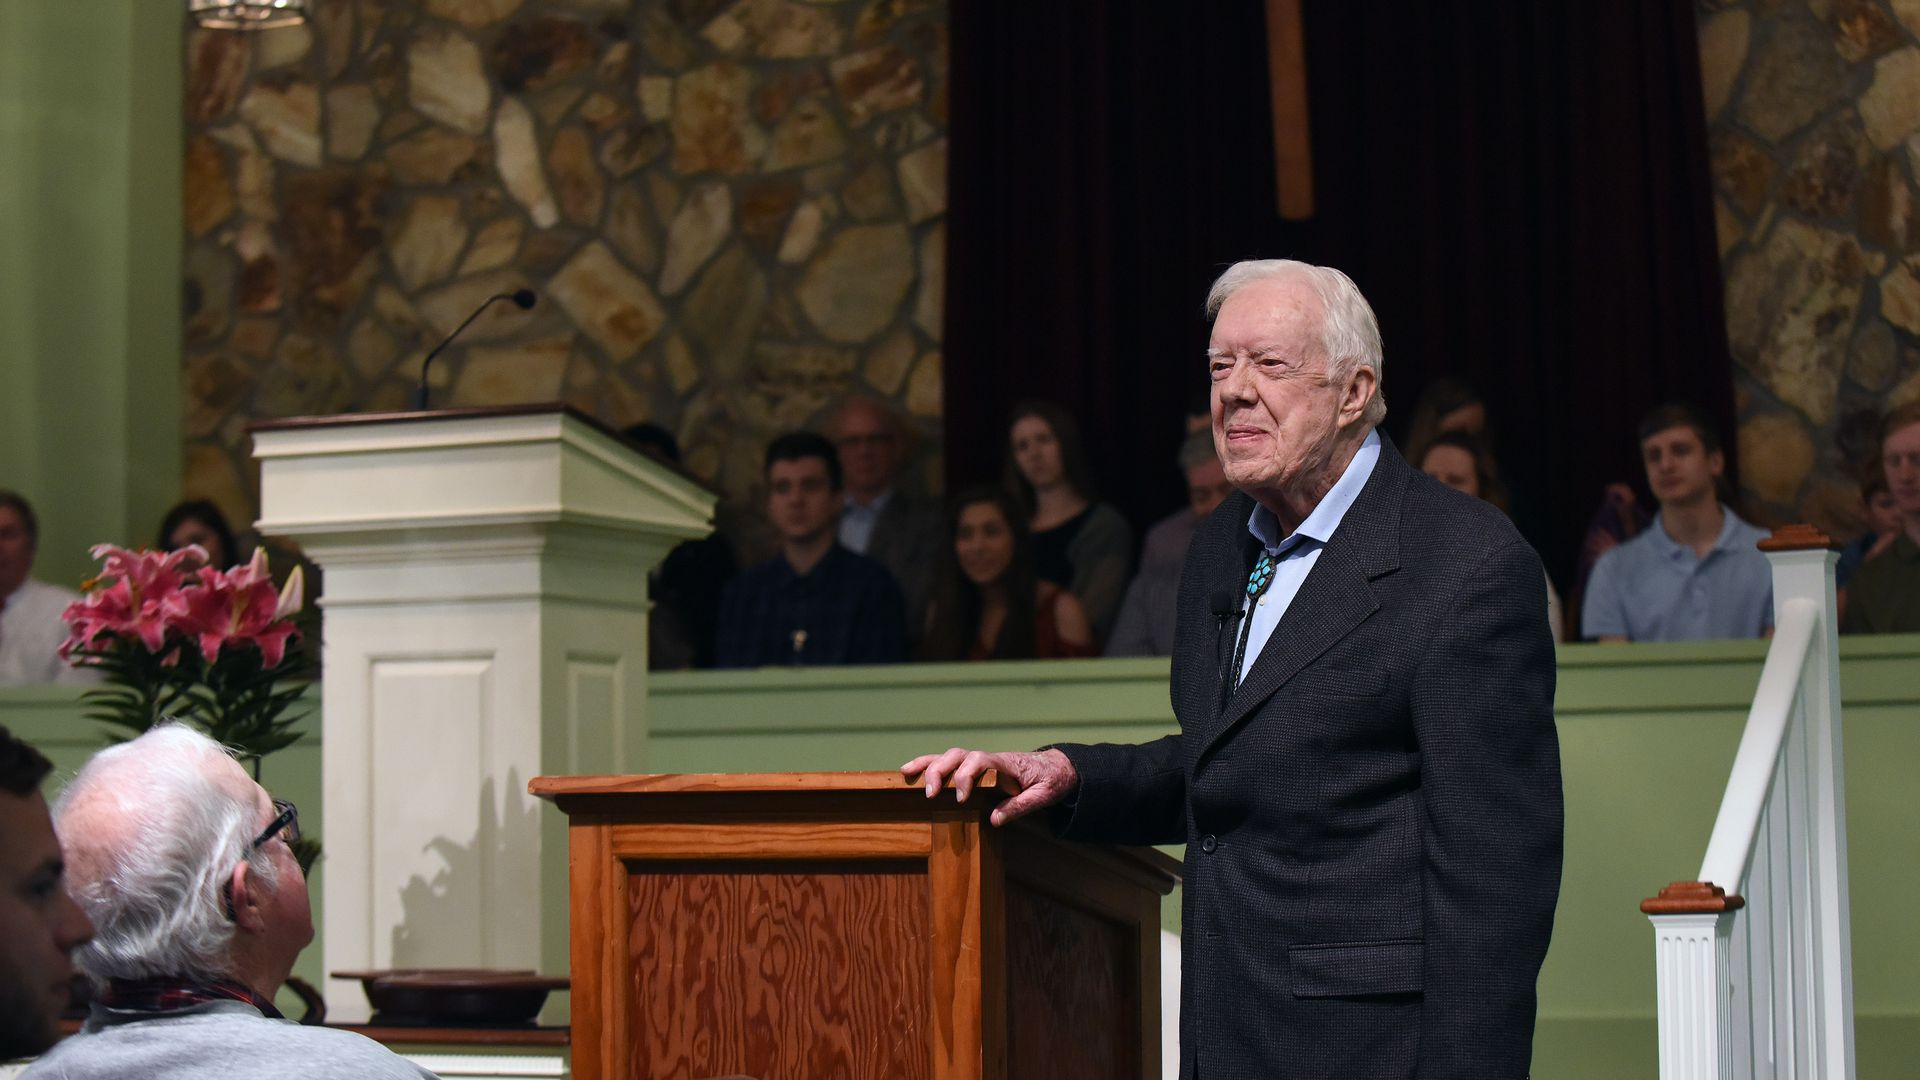 Former U.S. President Jimmy Carter speaks to the congregation at Maranatha Baptist Church before teaching Sunday school in his hometown of Plains, Georgia